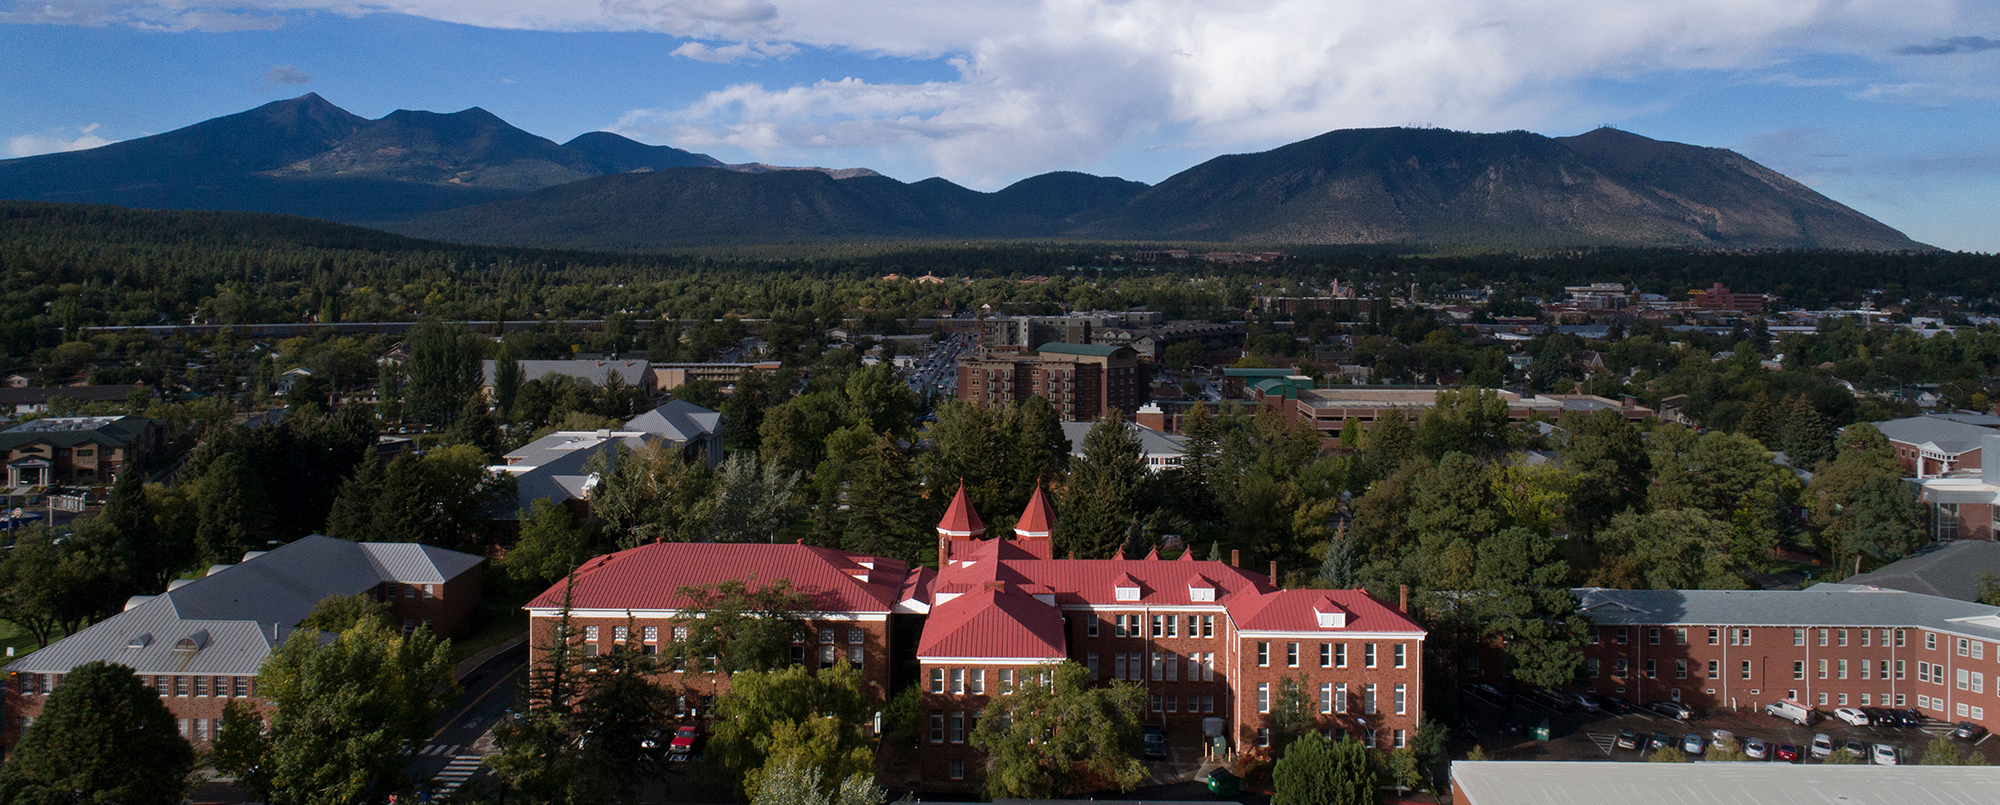 Overview photo of NAU campus with San Francisco Peaks in the background